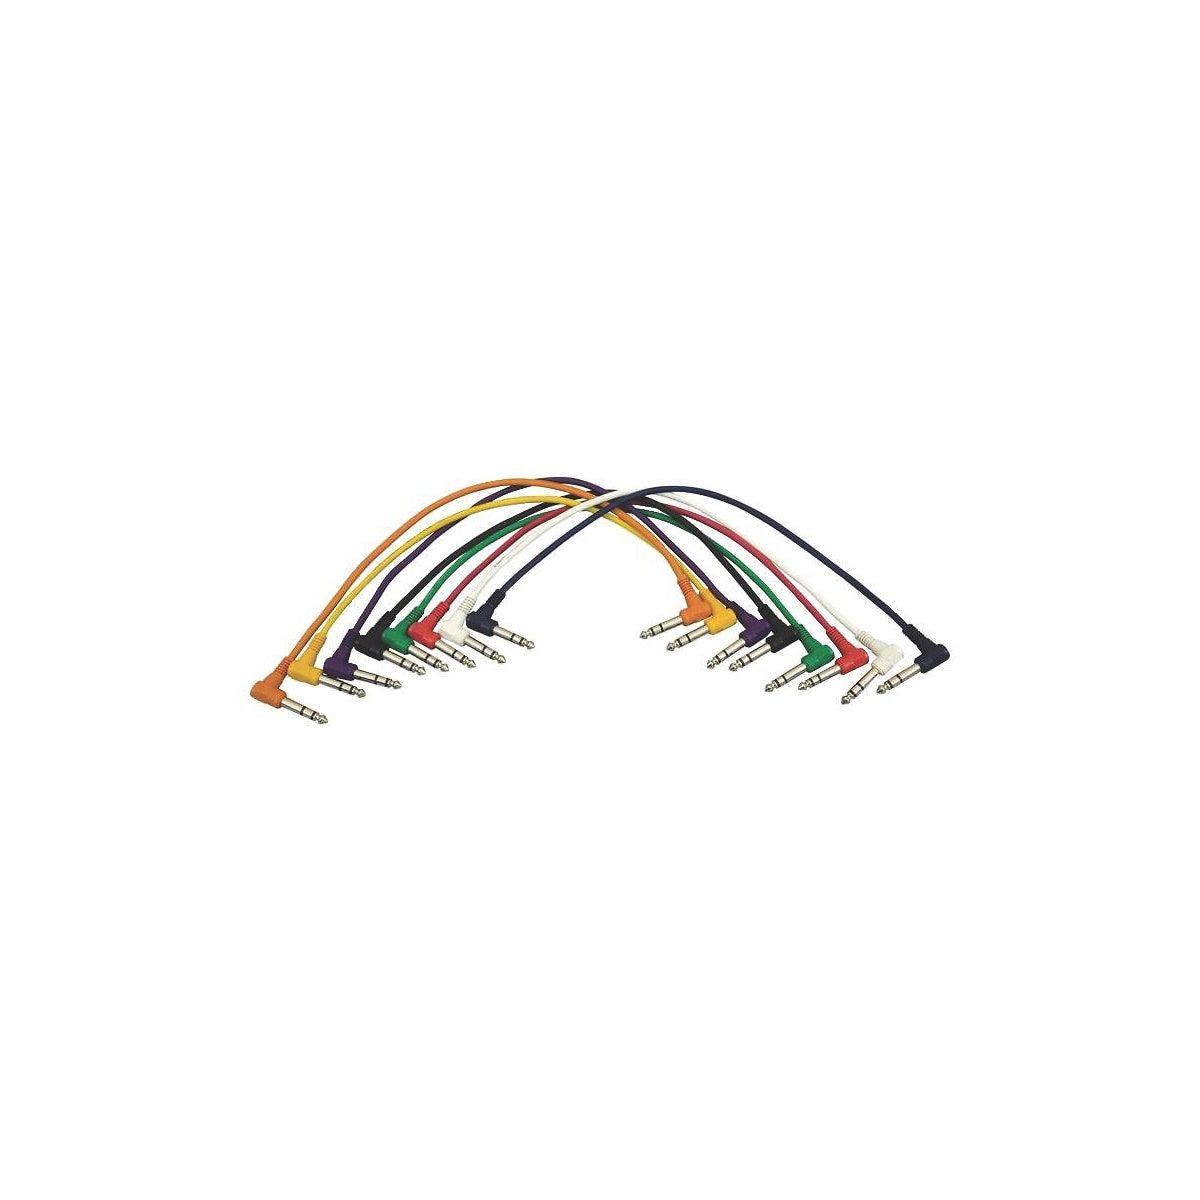 Hot Wires Balanced Patch Cables, PC1817TRSR, Right Angle End, 8-Pack, 17 Inch